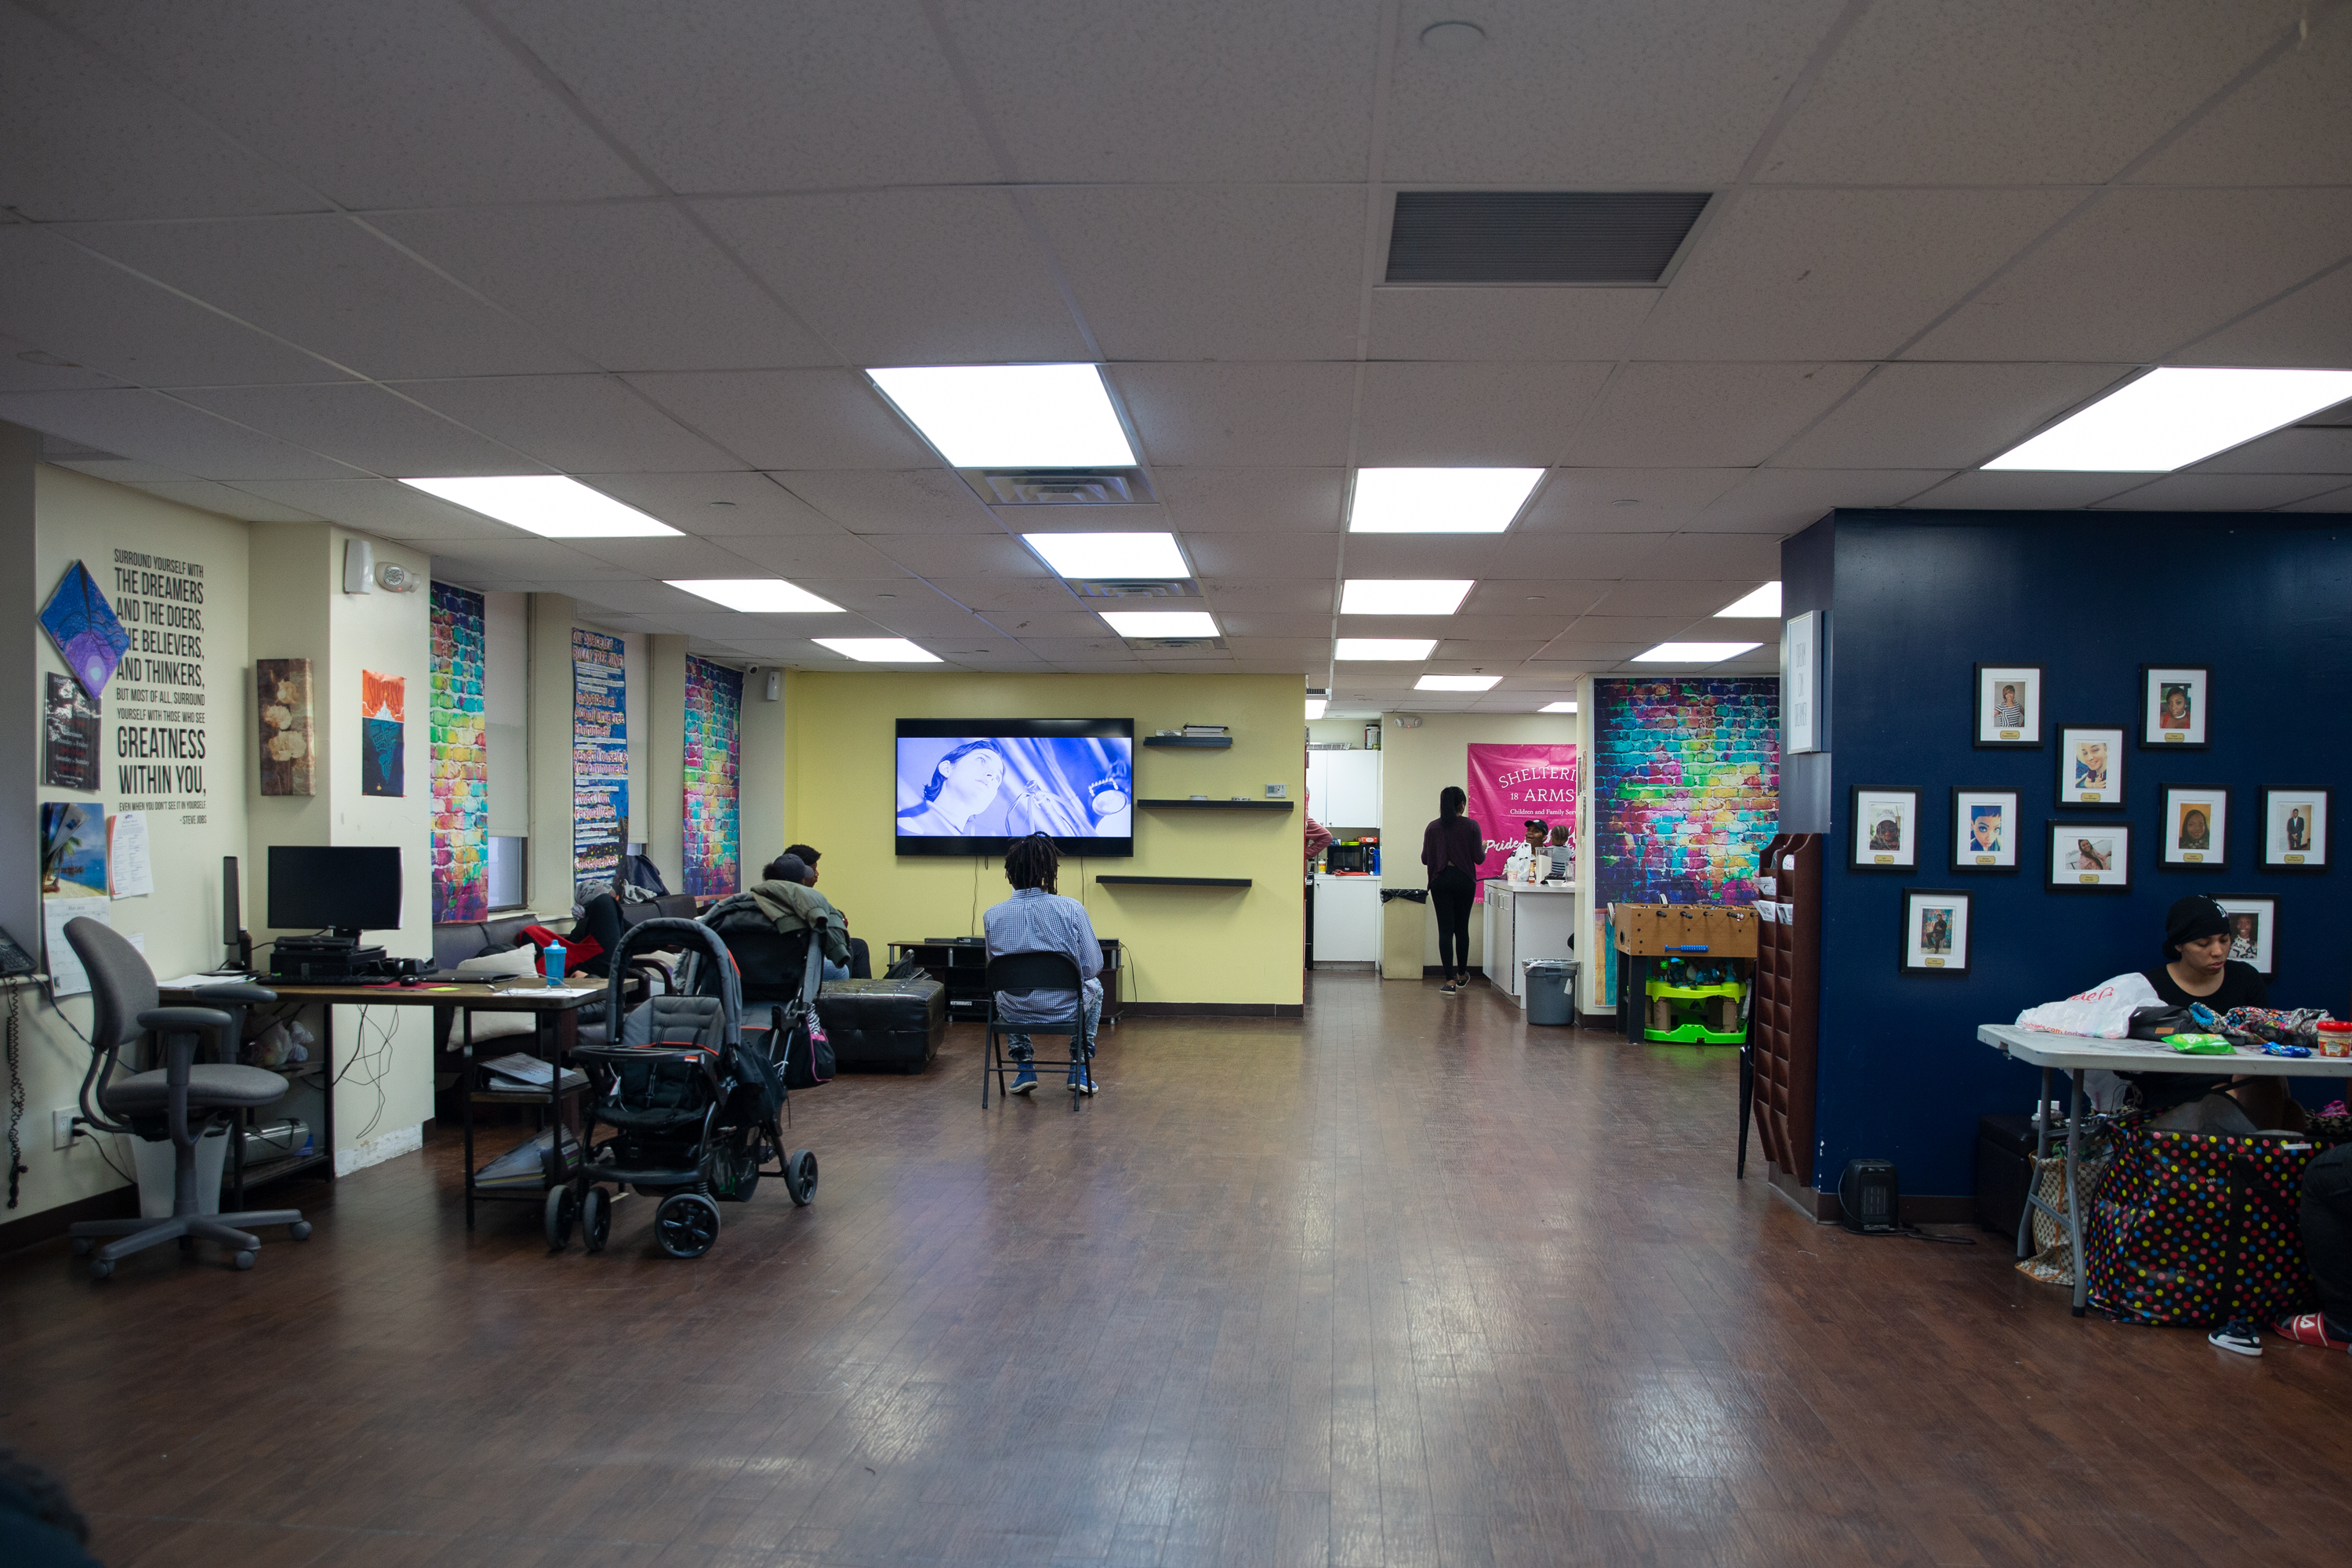 Young people spent time off the streets in a Jamaica, Queens shelter,May 21, 2019.